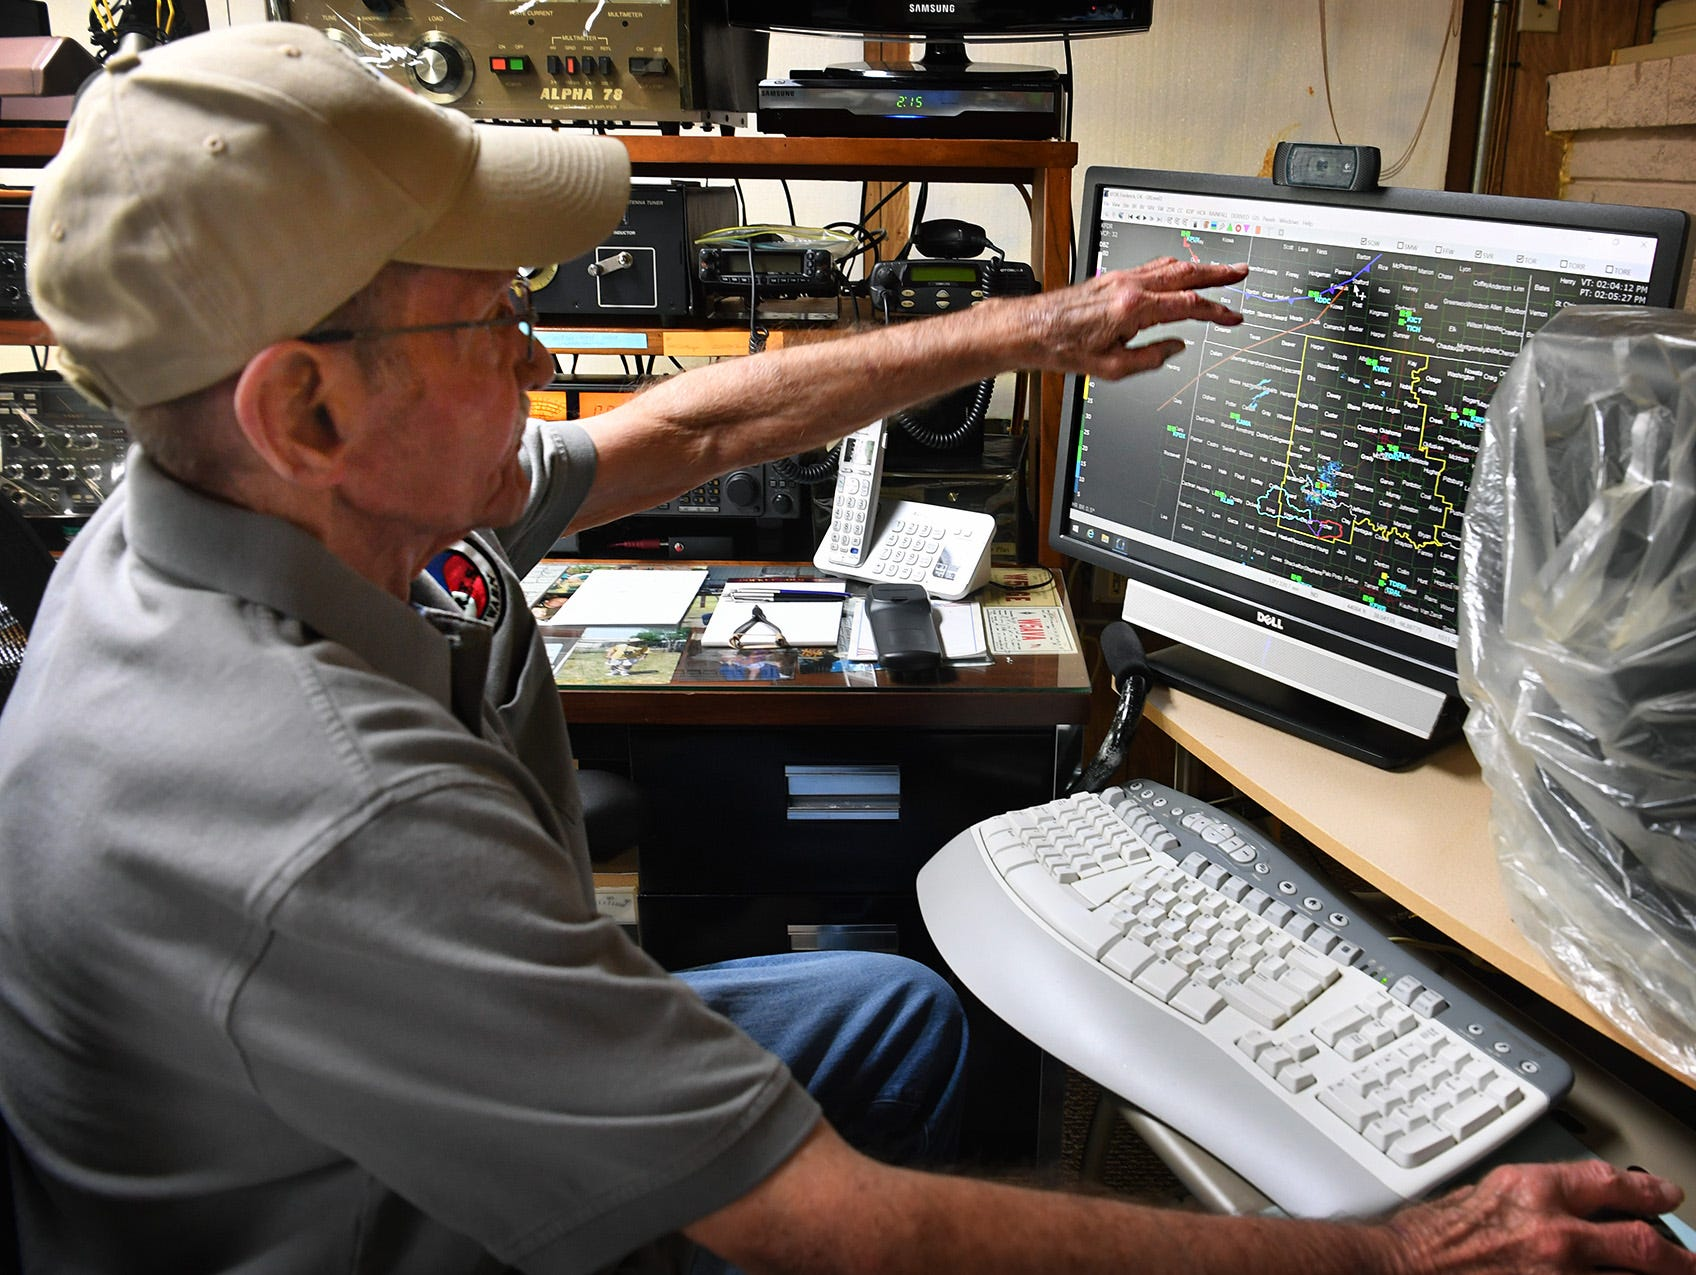 Weather spotter and ham radio operator Charlie Byars decribes the sophisticated computer software he uses when monitoring severe weather in the North Texas area.